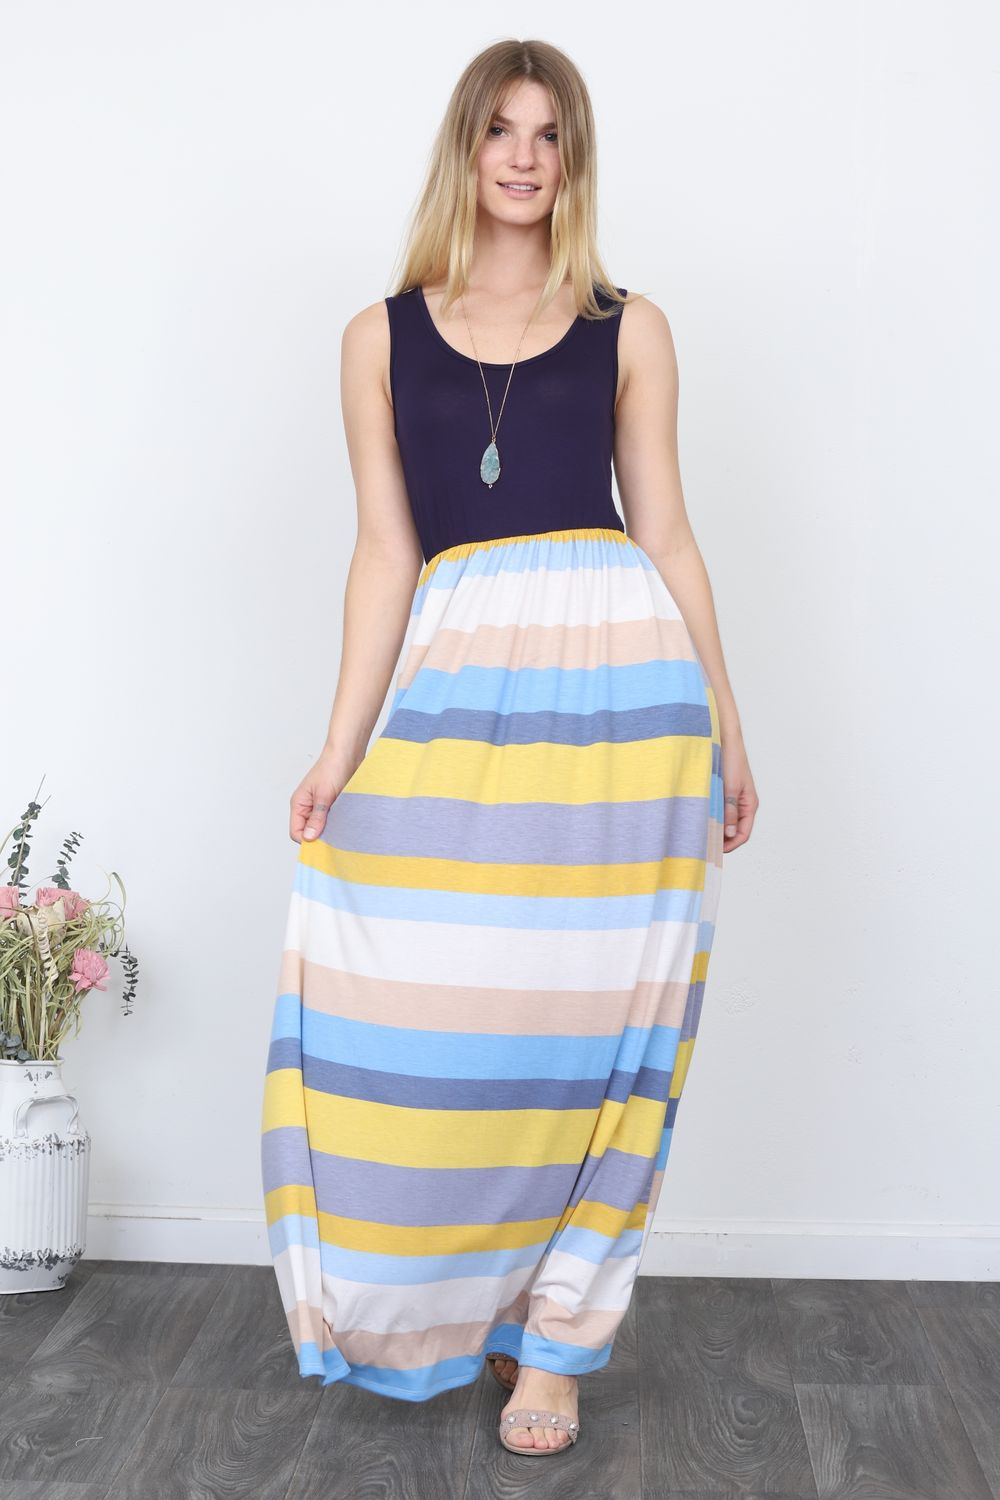 Solid Navy Sleeveless Top & Multi Stripe Maxi Dress